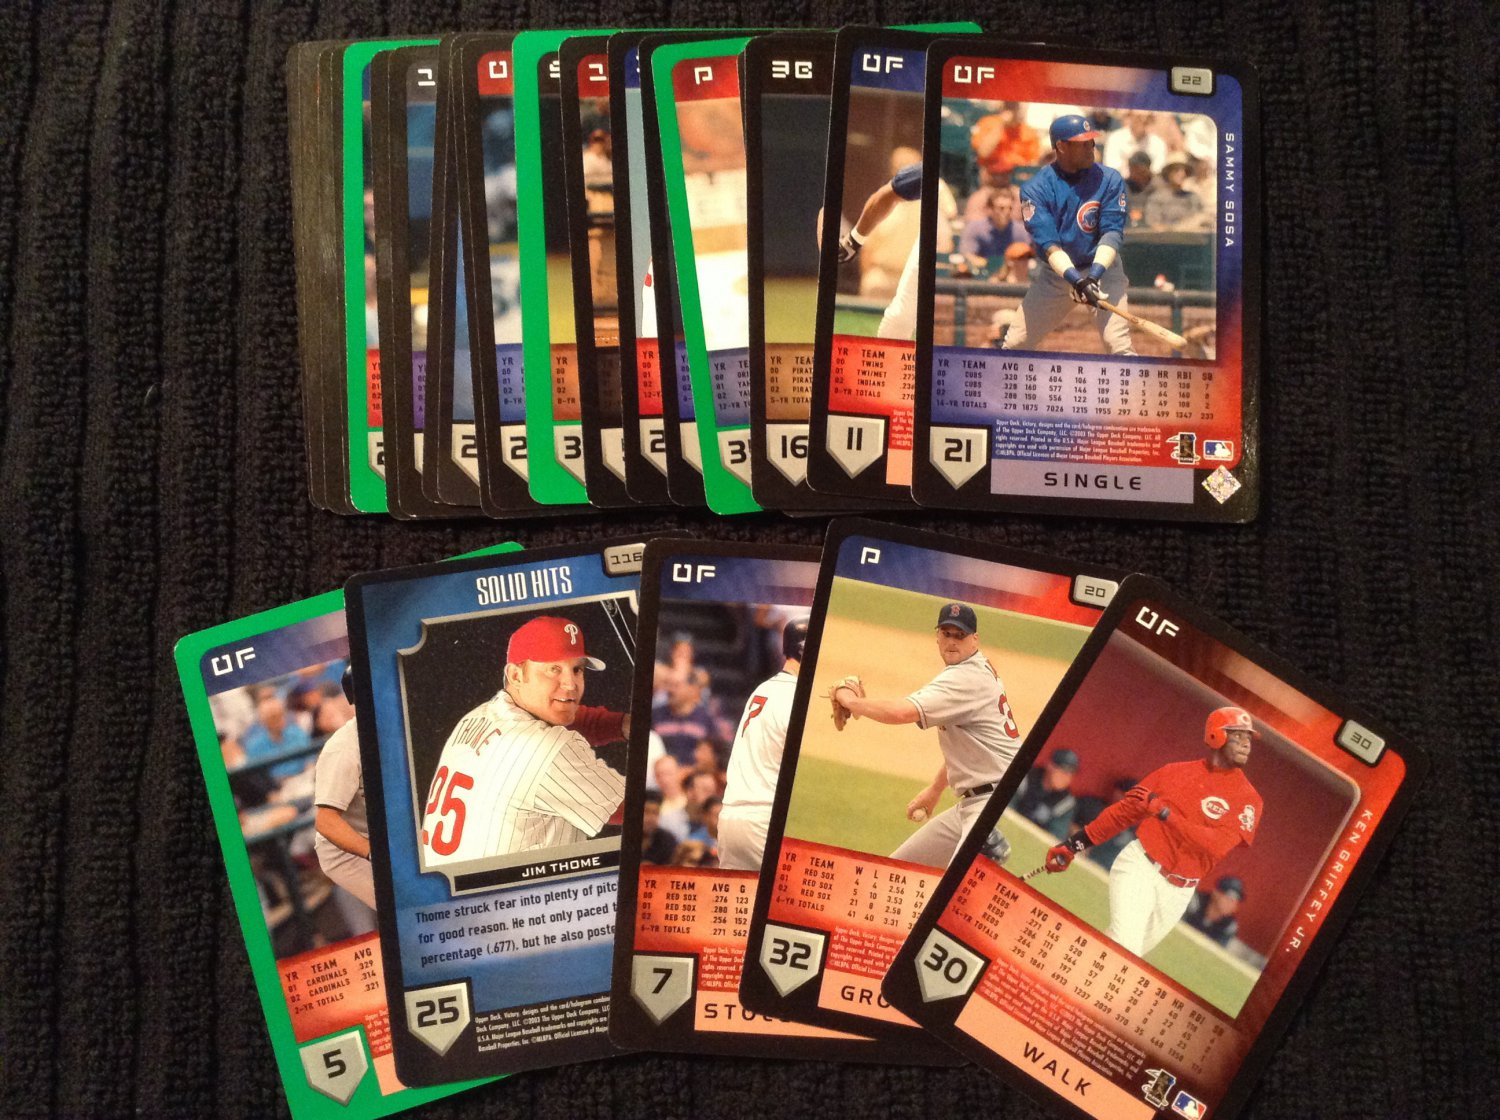 Lot of 5 - 2003 Upper Deck Victory Cards